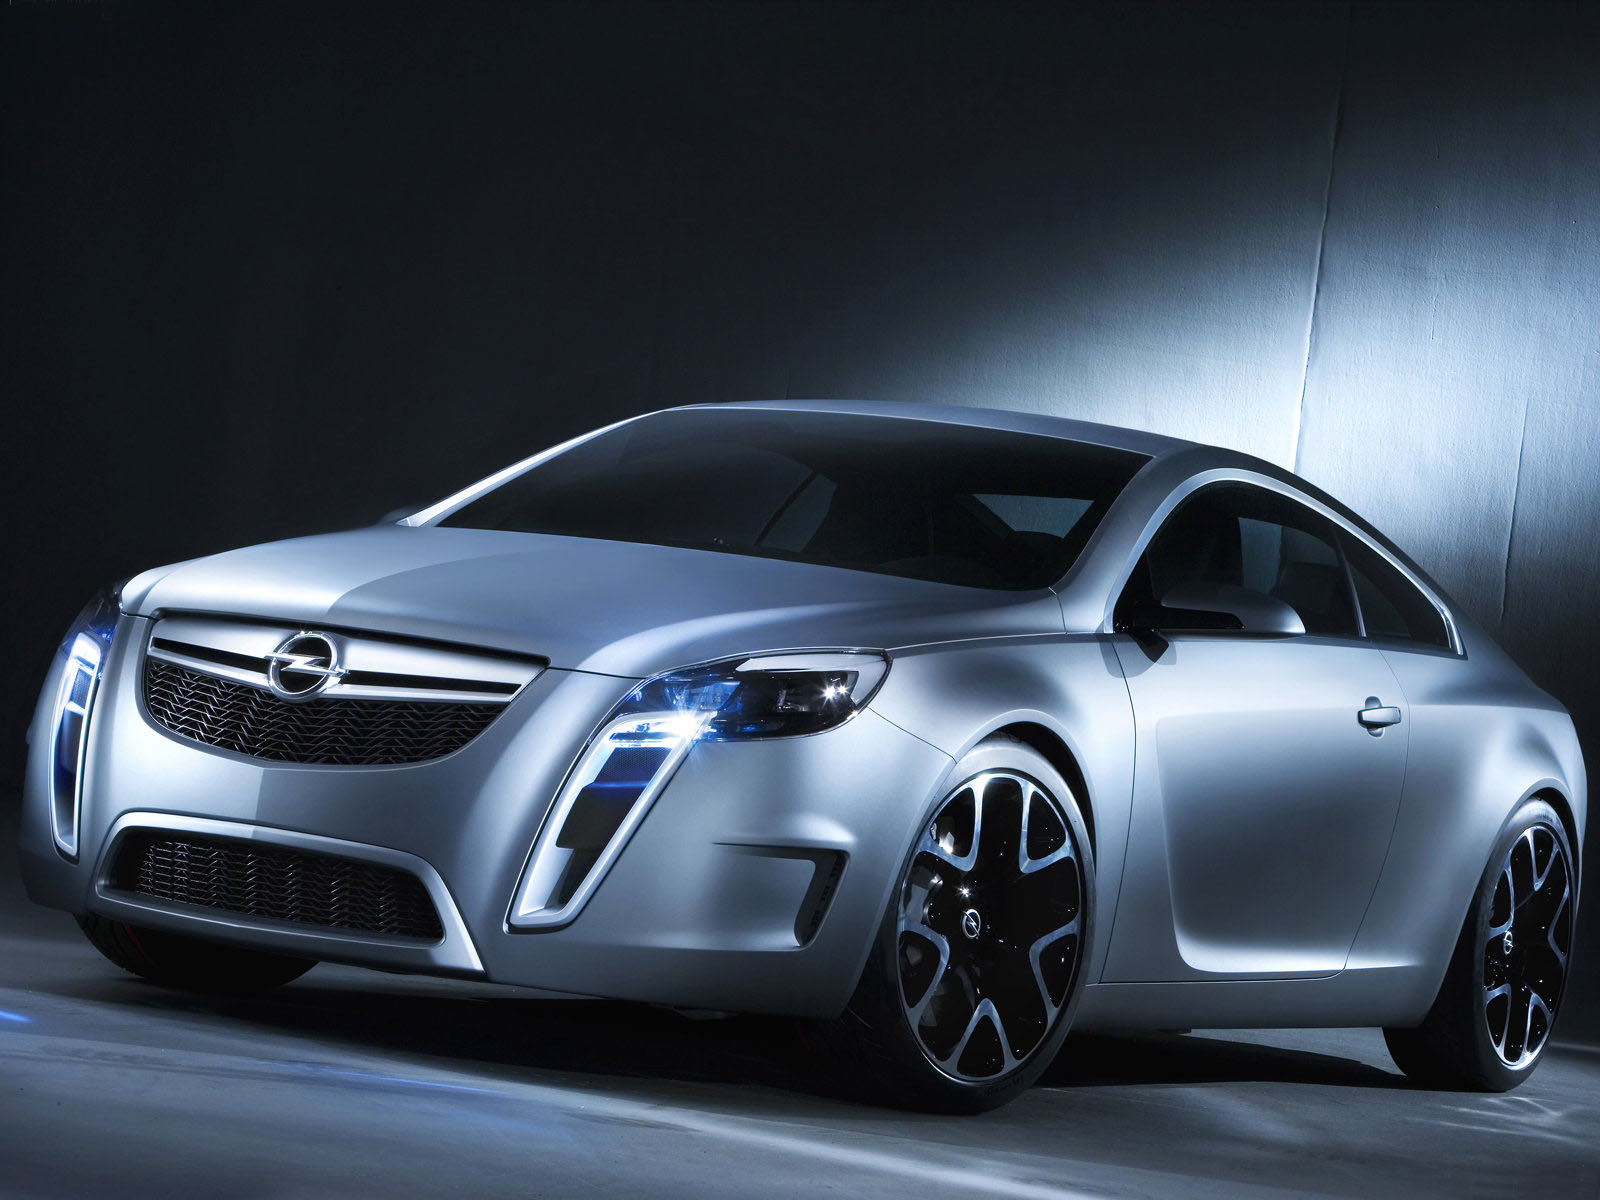 Cars HD Wallpapers Opel Vectra Tuning HD Wallpapers 1600x1200